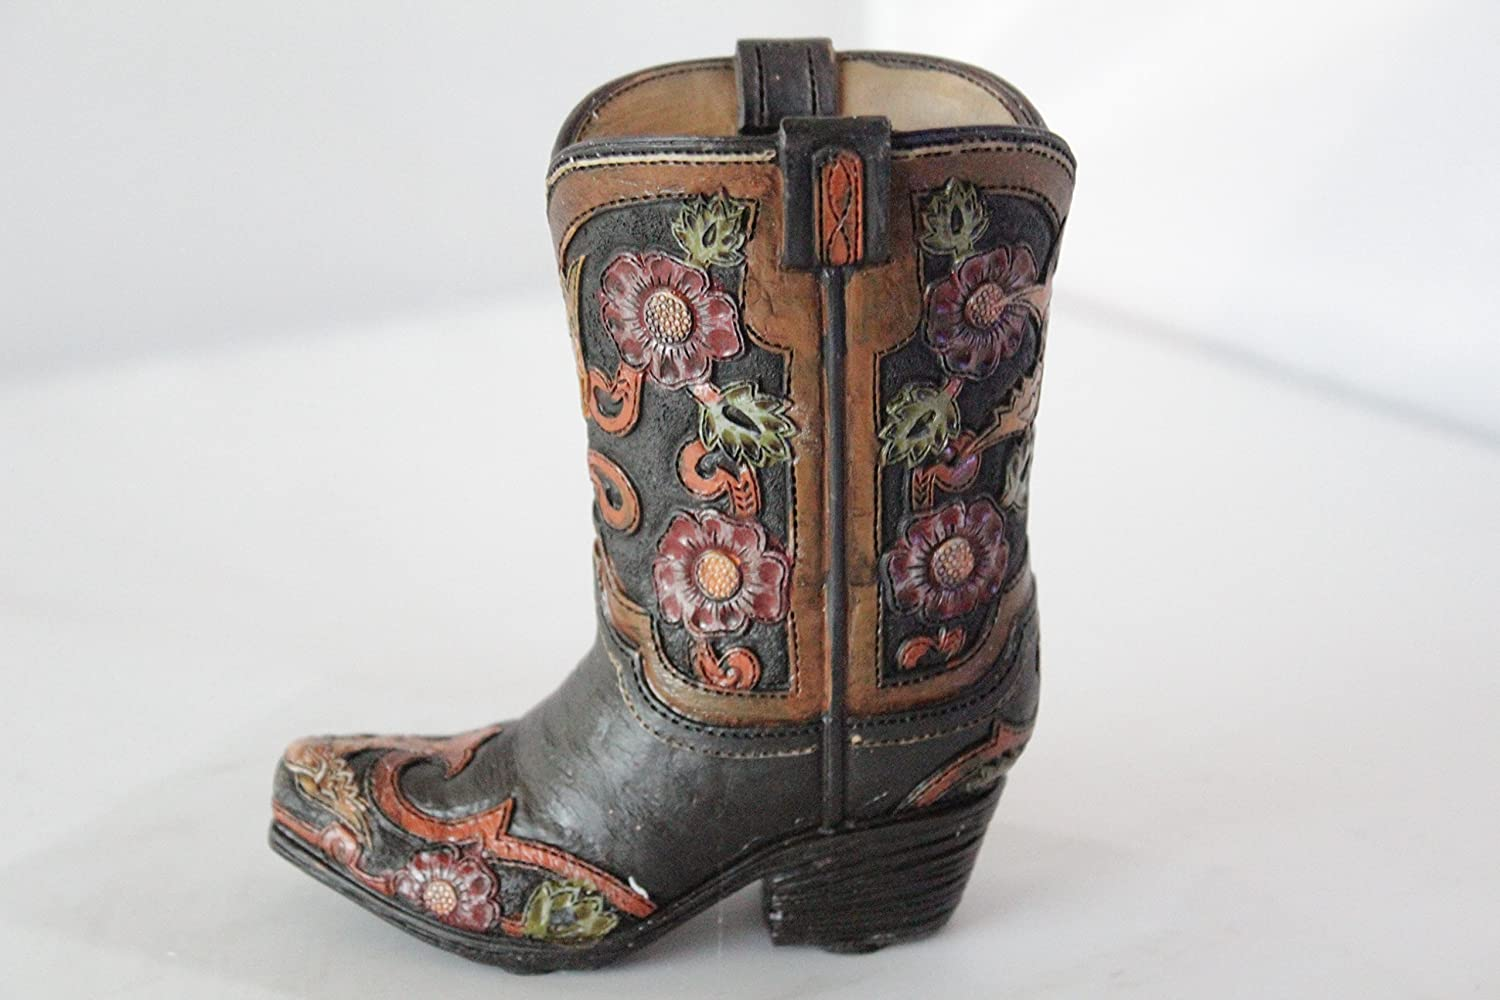 Small Western Cowboy Cowgirl Rustic Hand Tooled Flowers Boot Vase Pen Pencil Holder